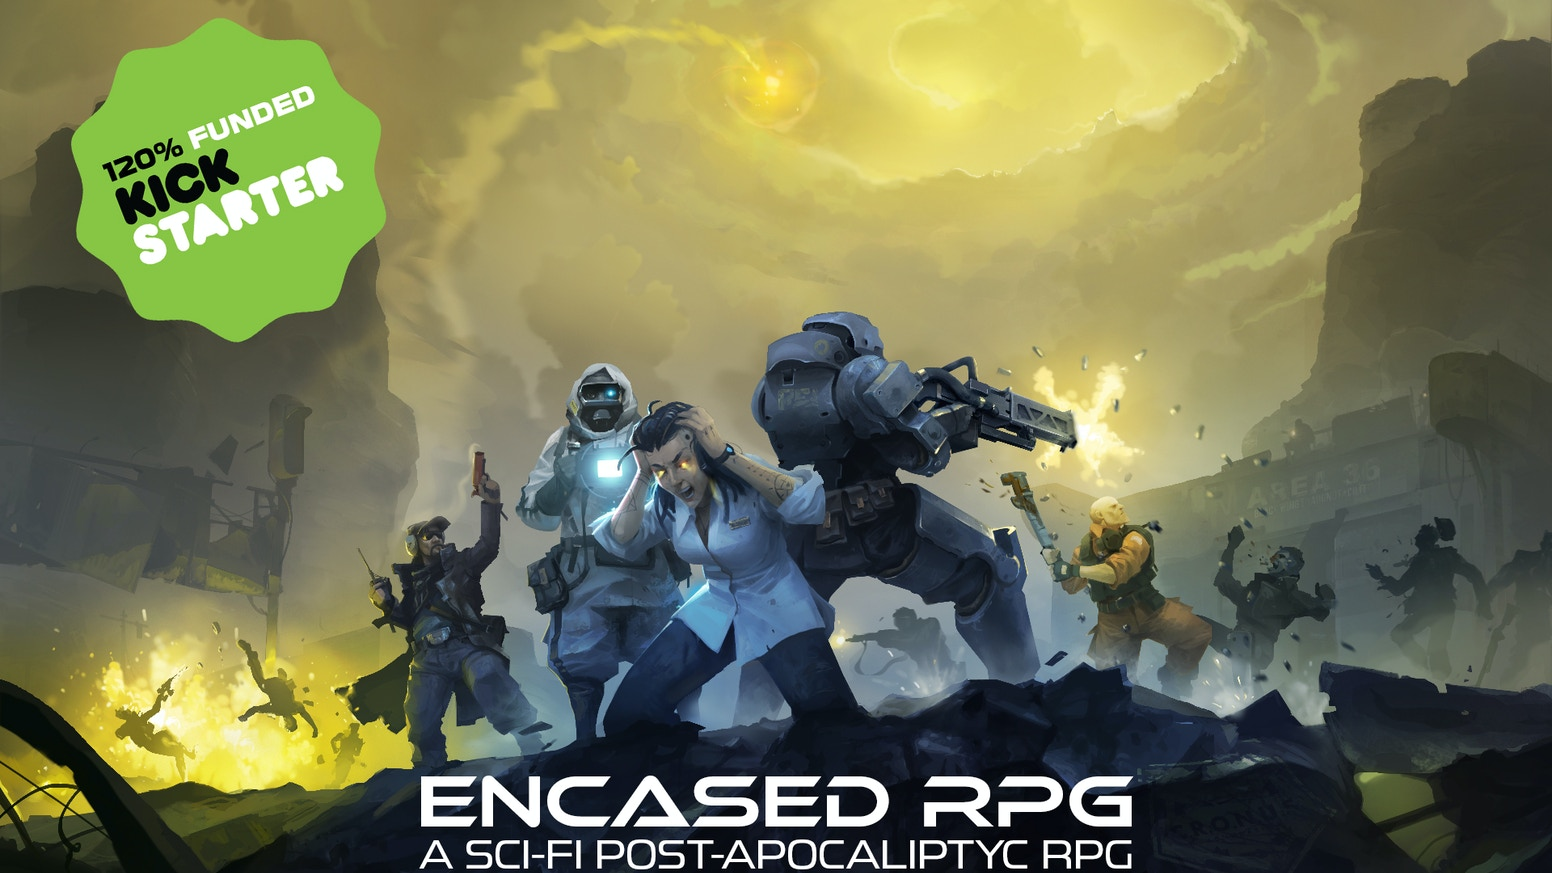 Encased Old School Isometric Turn Based Rpg By Dark Crystal Games Switch State Of Mind English Pal Tactical Combat And Intense Non Linear Storyline Inspired Original Fallout